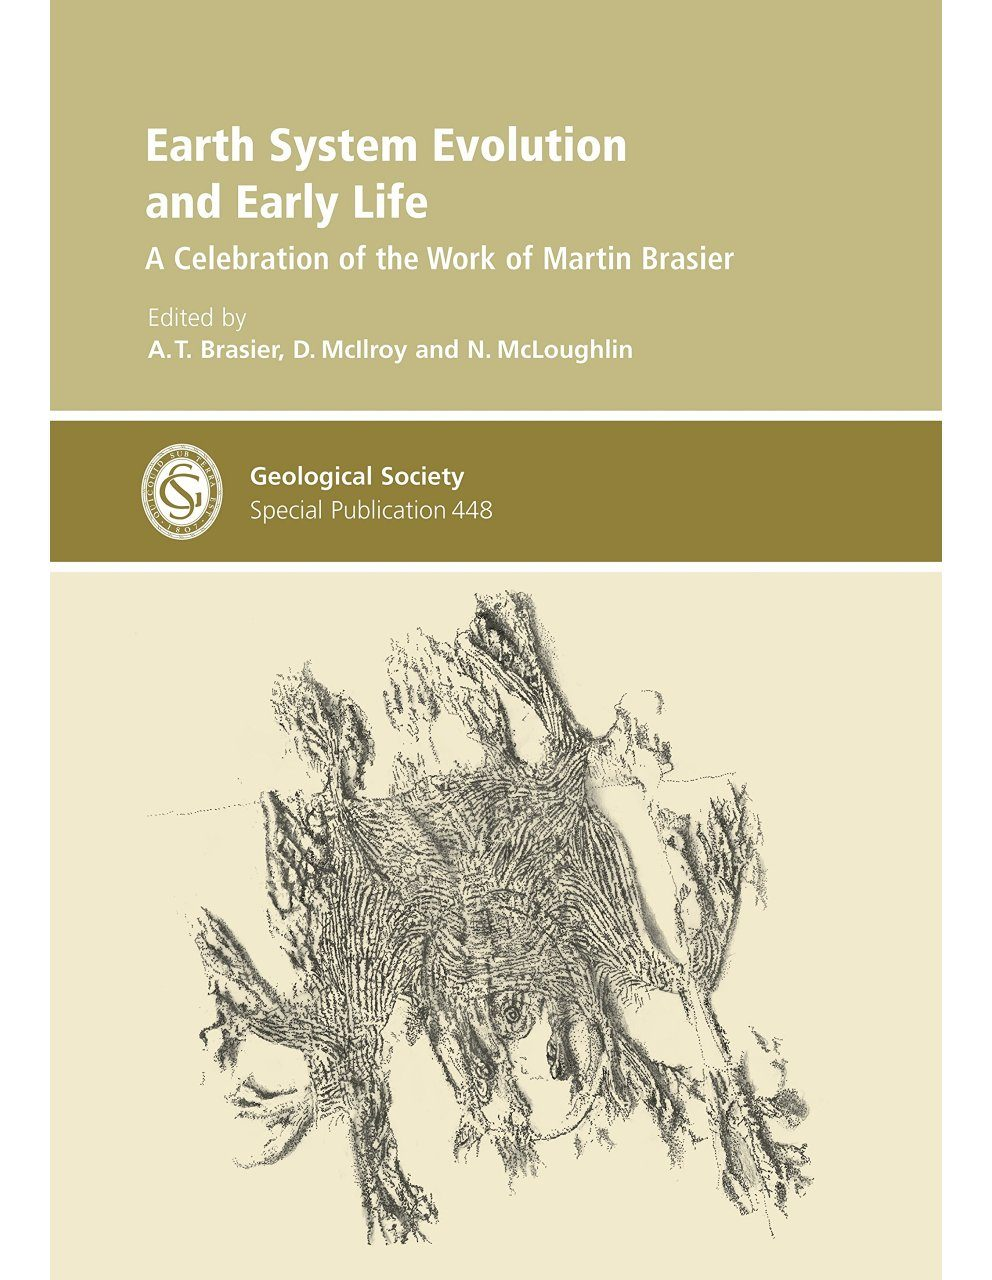 Earth System Evolution and Early Life